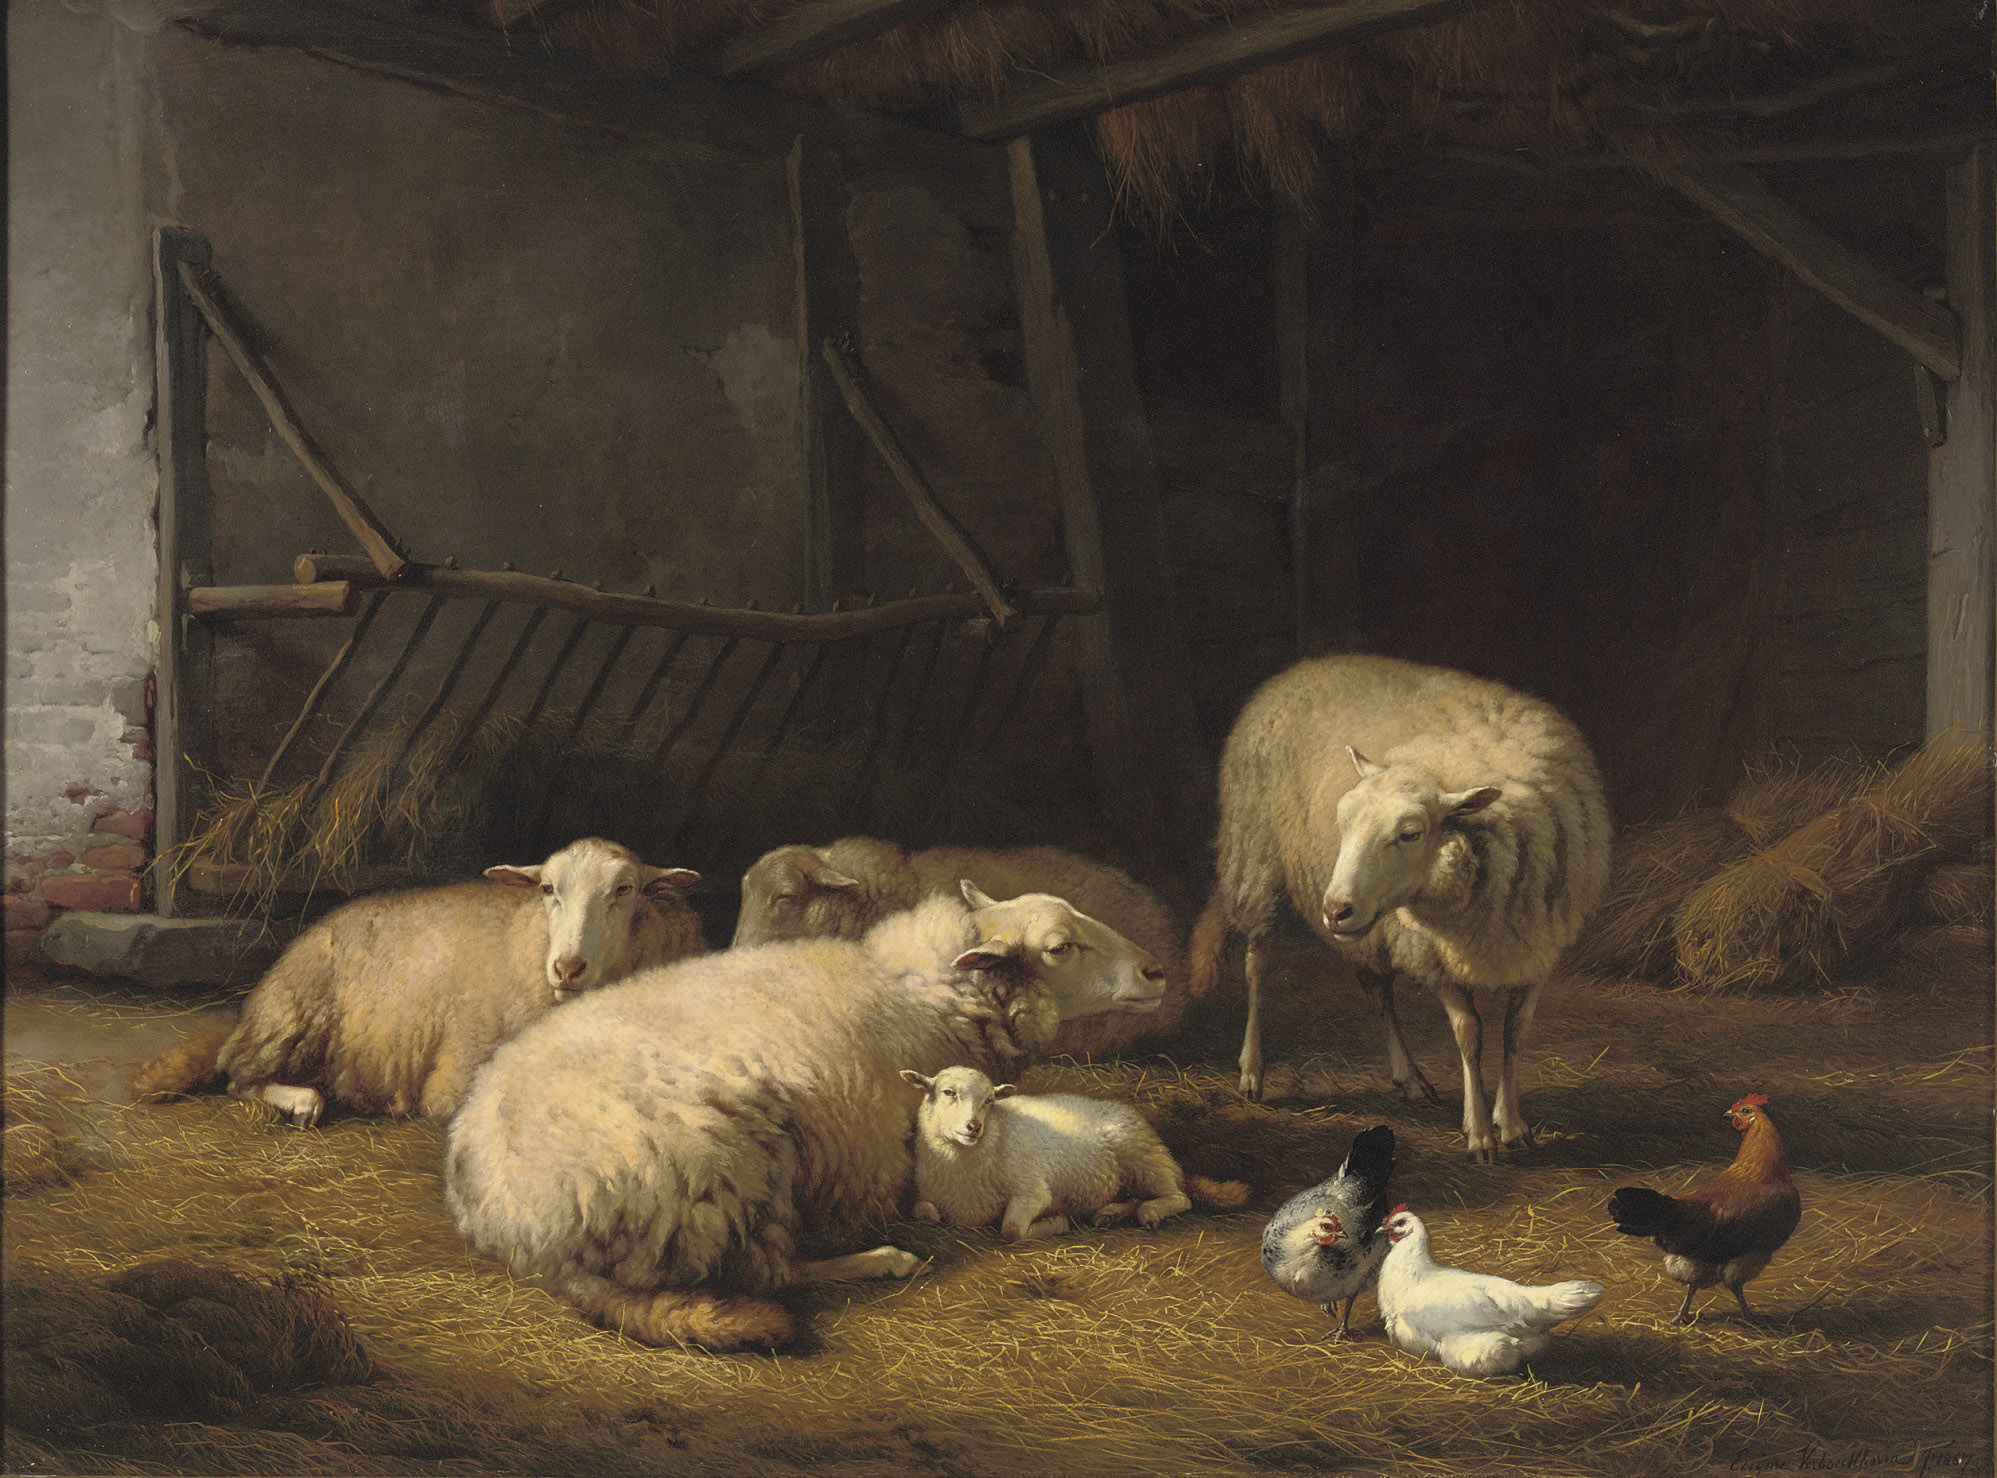 A barn with sheep and chickens